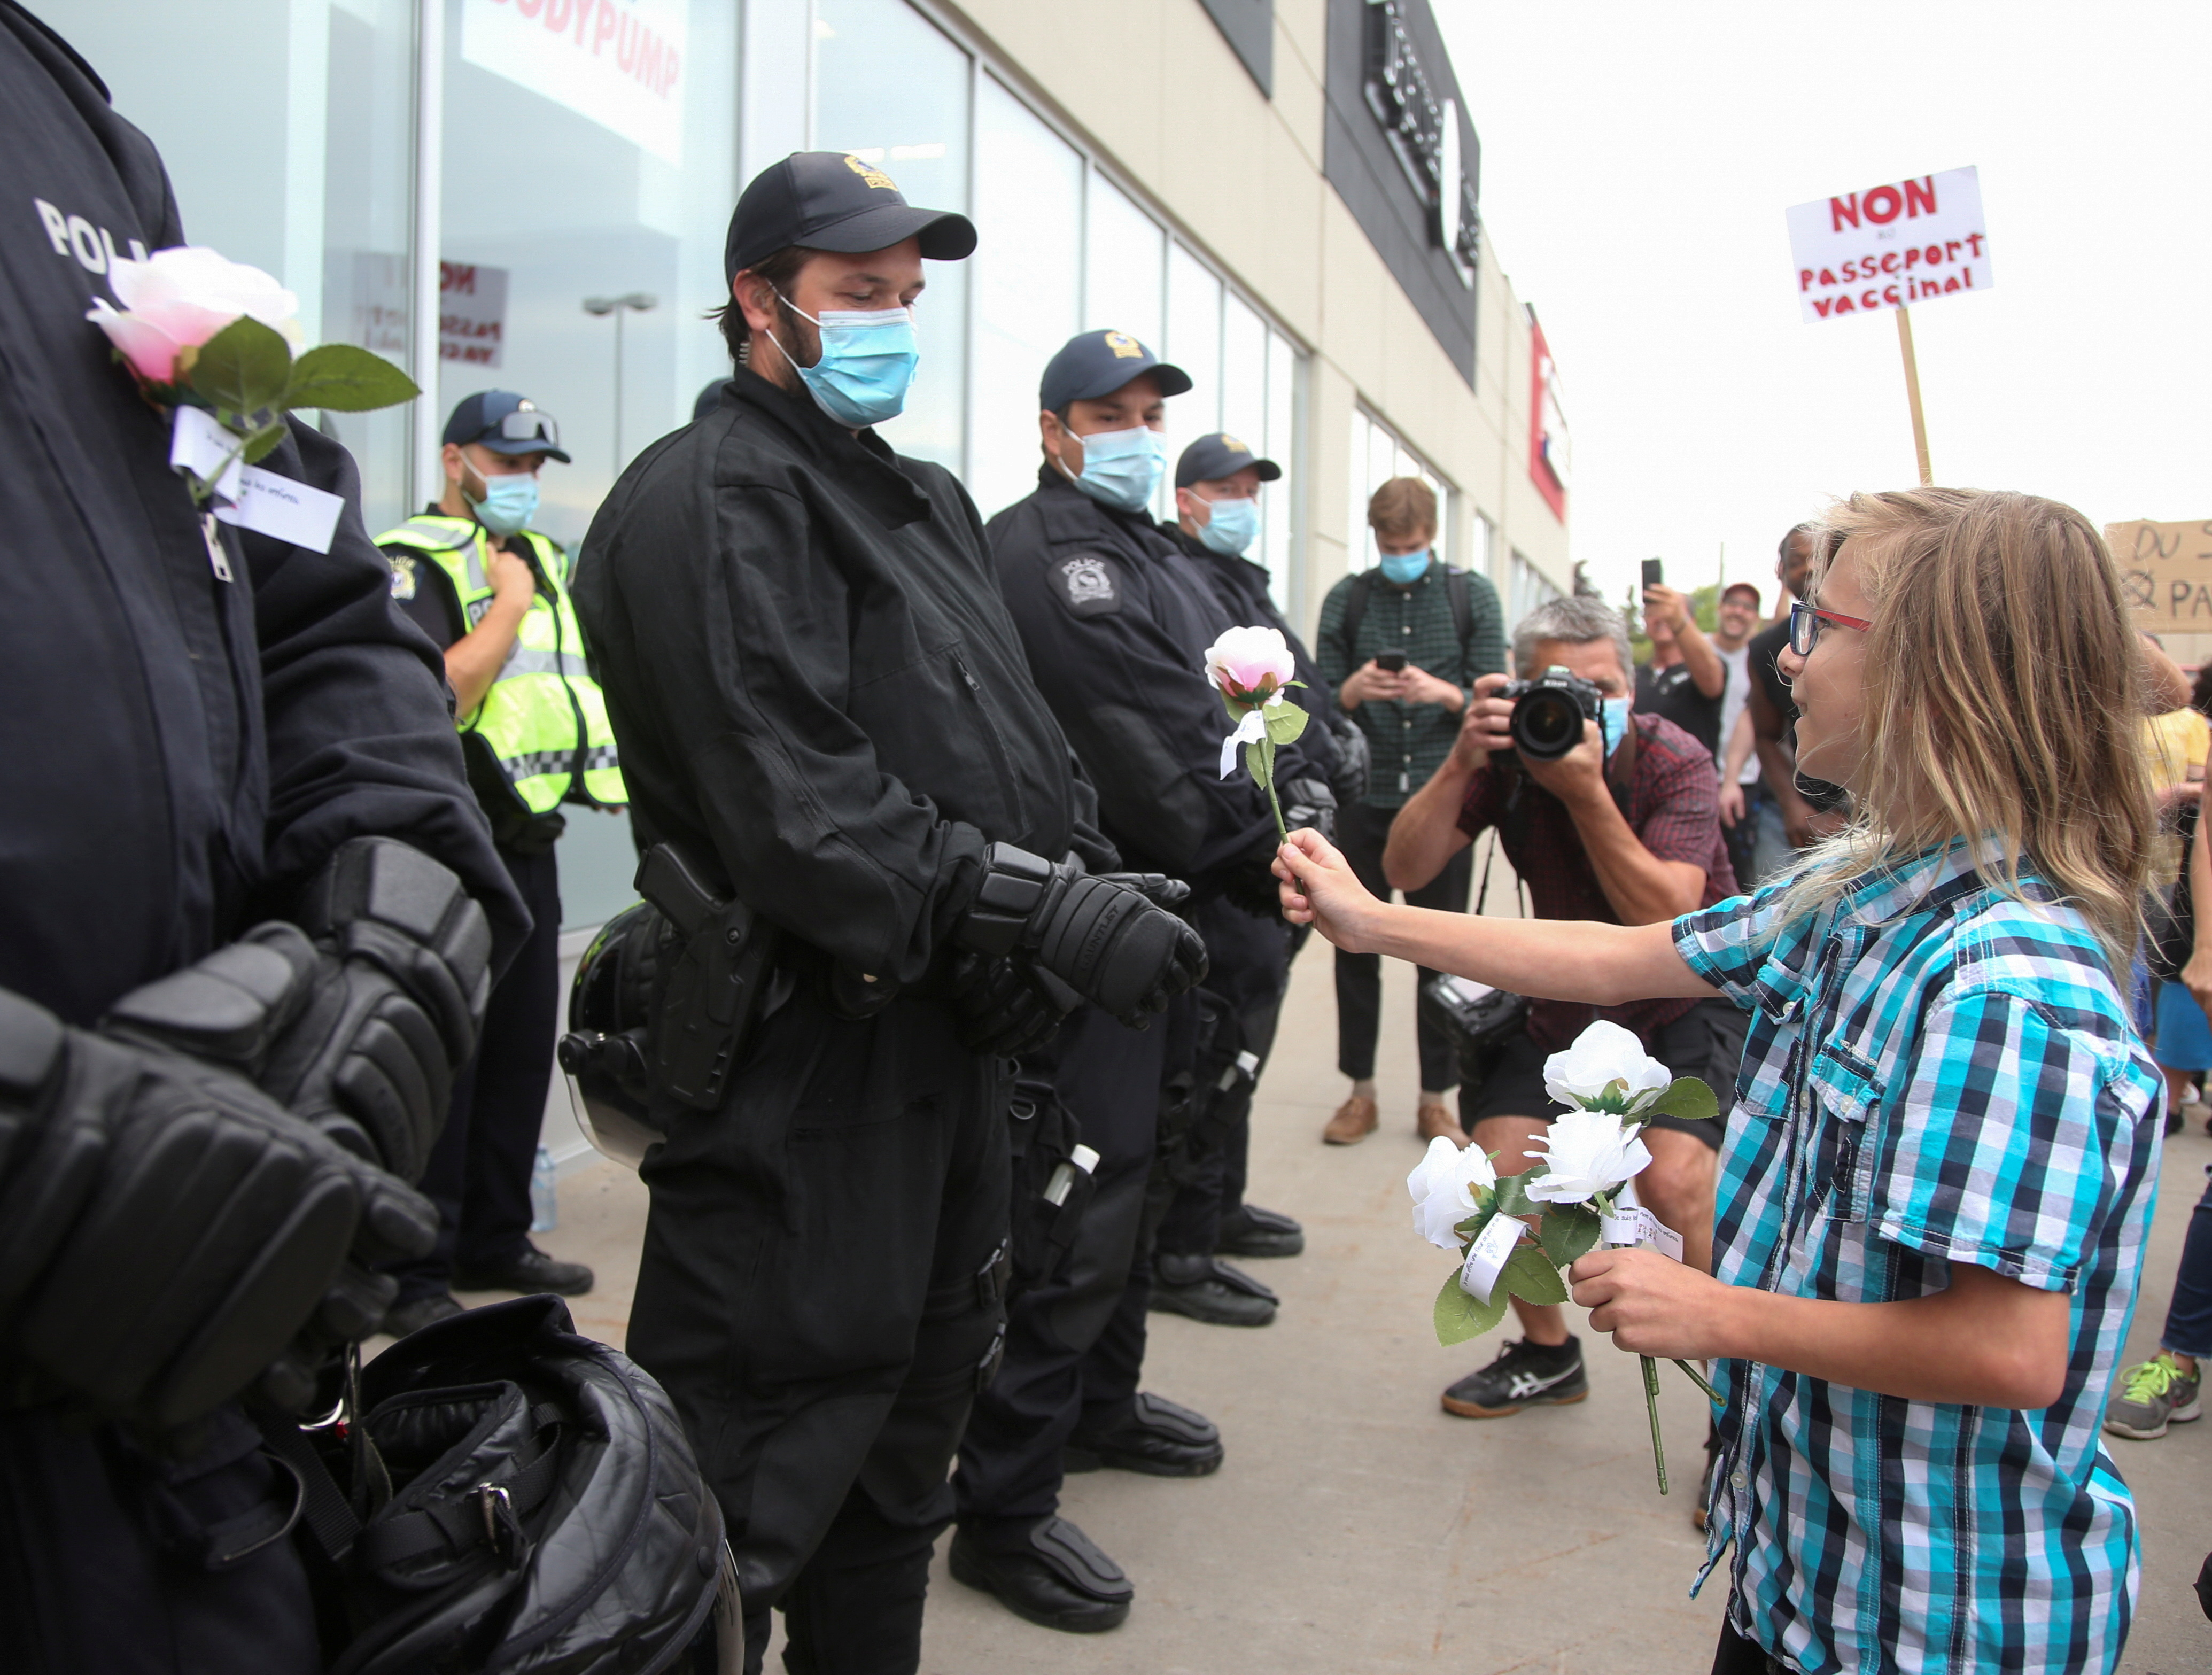 A protester gives roses to riot police members guarding the entrance to an Econofitness gym as people protest their use of a vaccine passport in Laval, Quebec, Canada August 17, 2021.  REUTERS/Christinne Muschi/File Photo